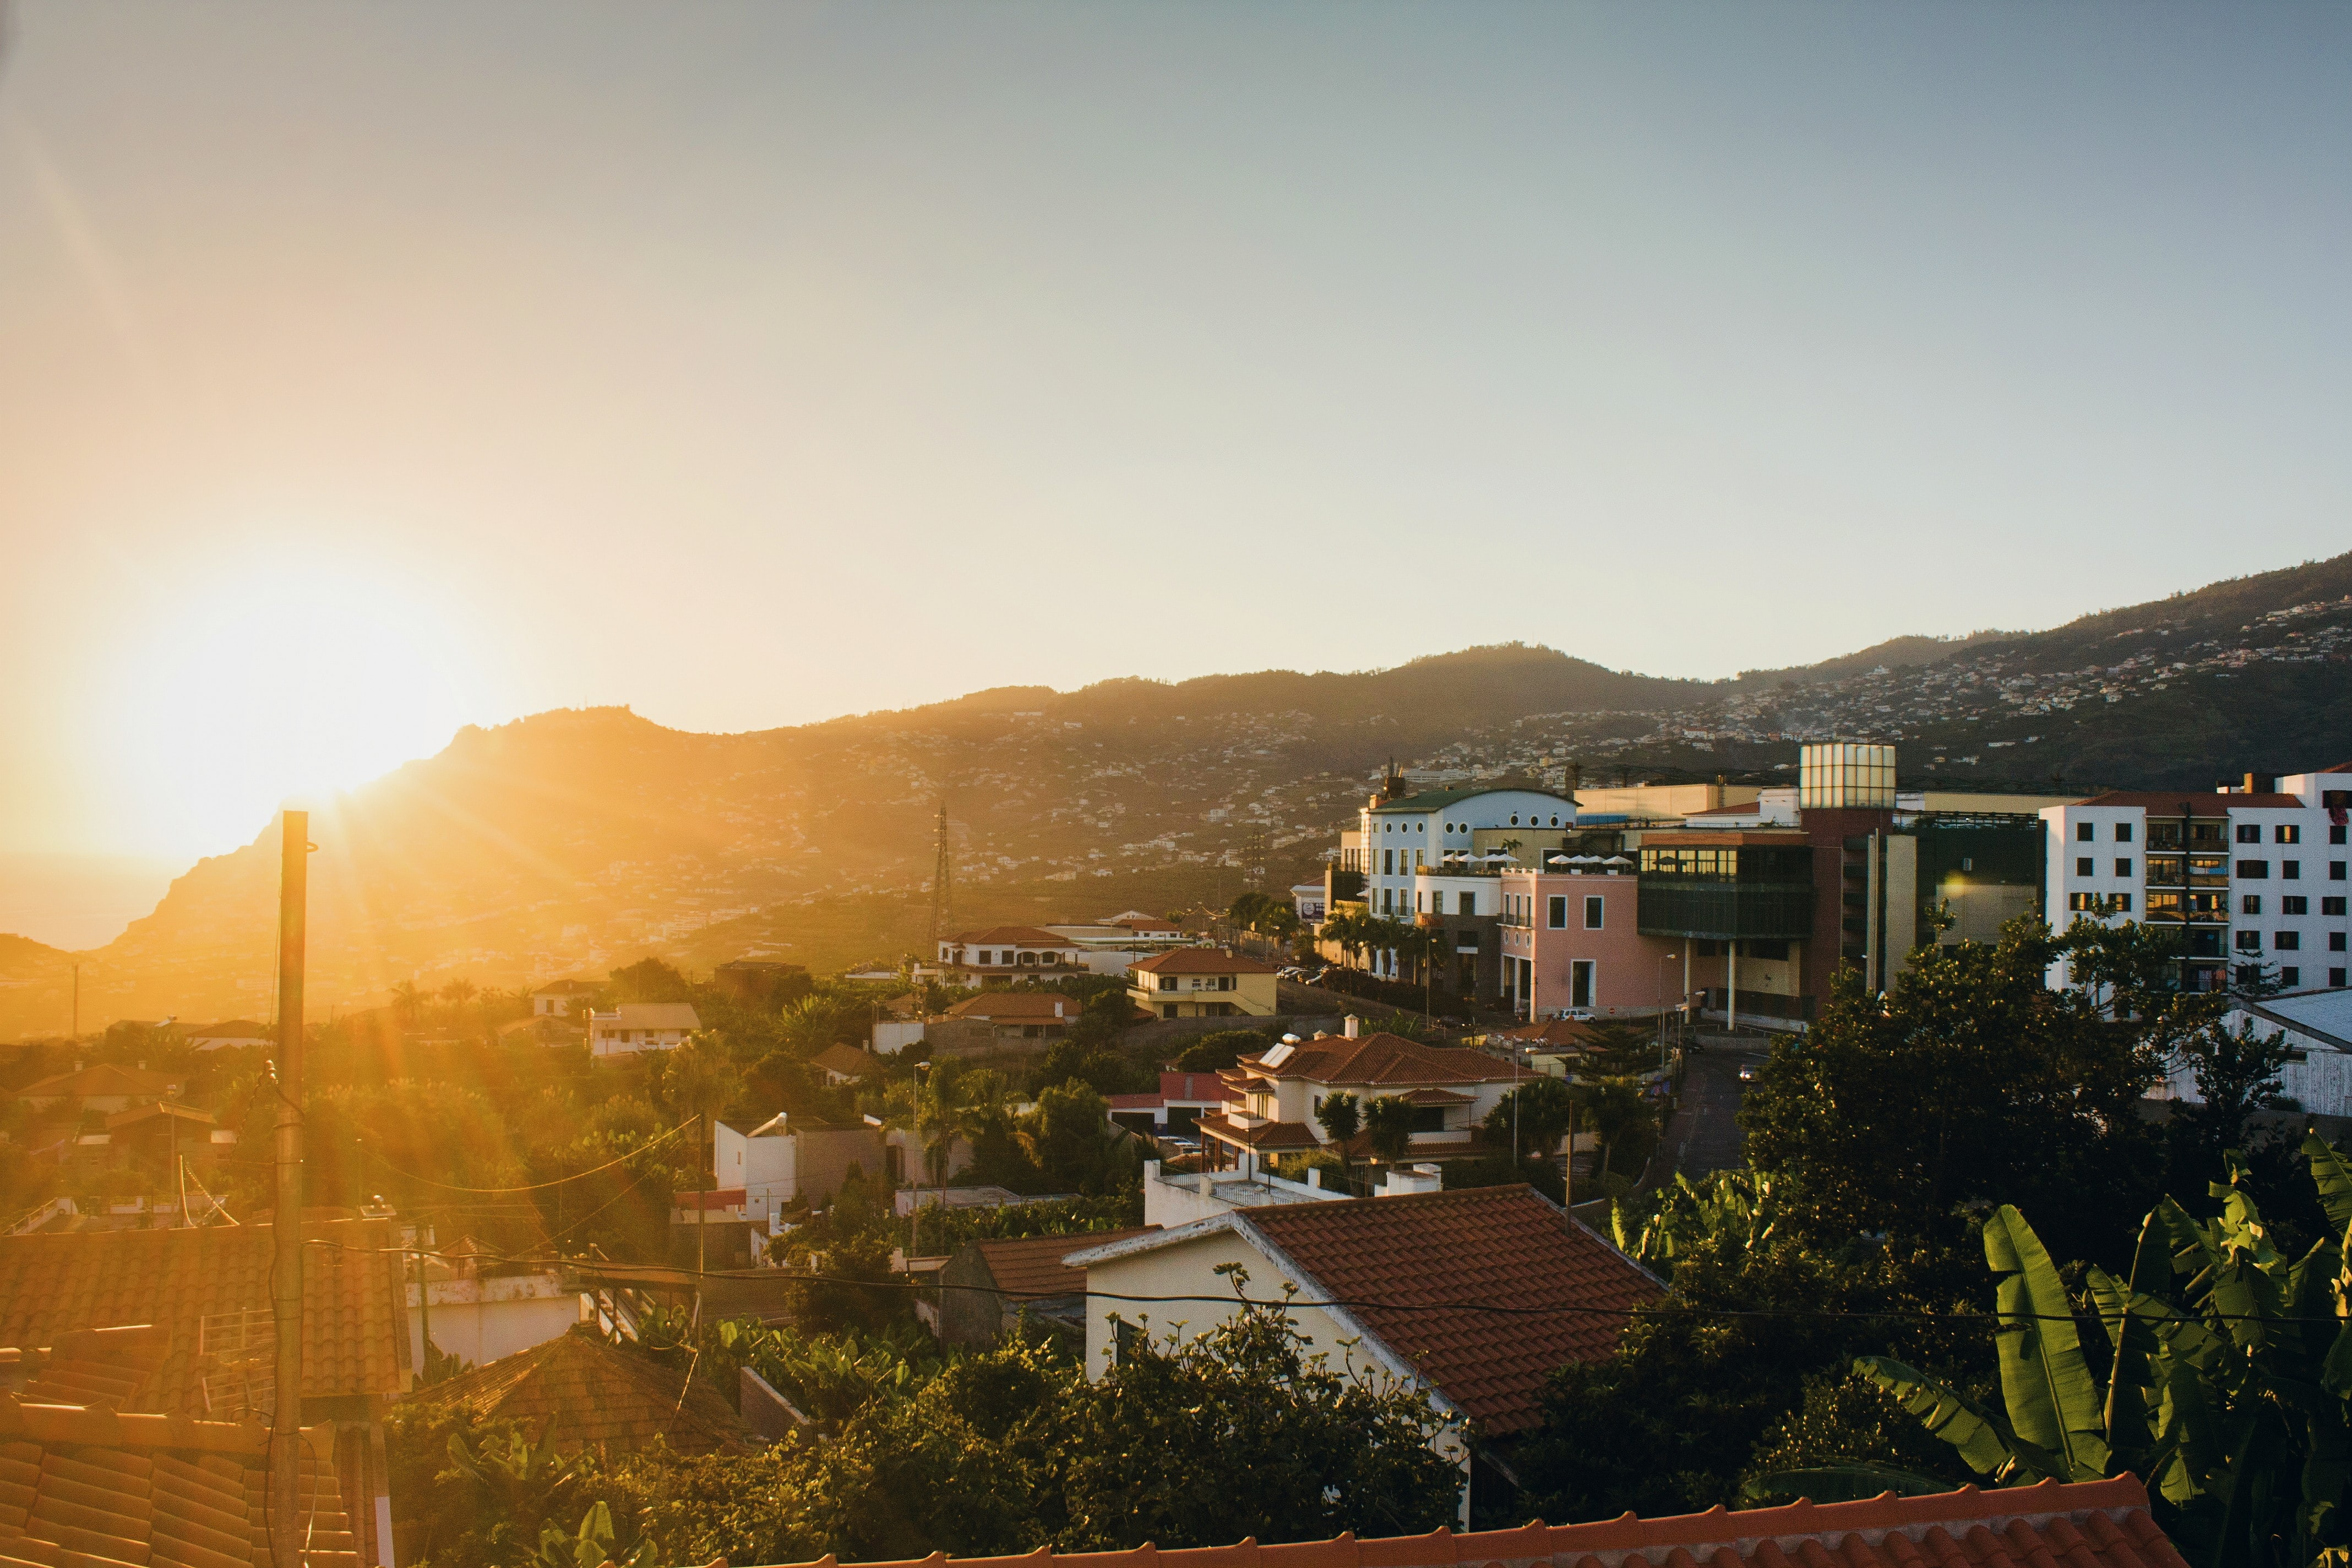 The sunrise-or-sunset over city rooftop, building tree and hillside on Madeira Island